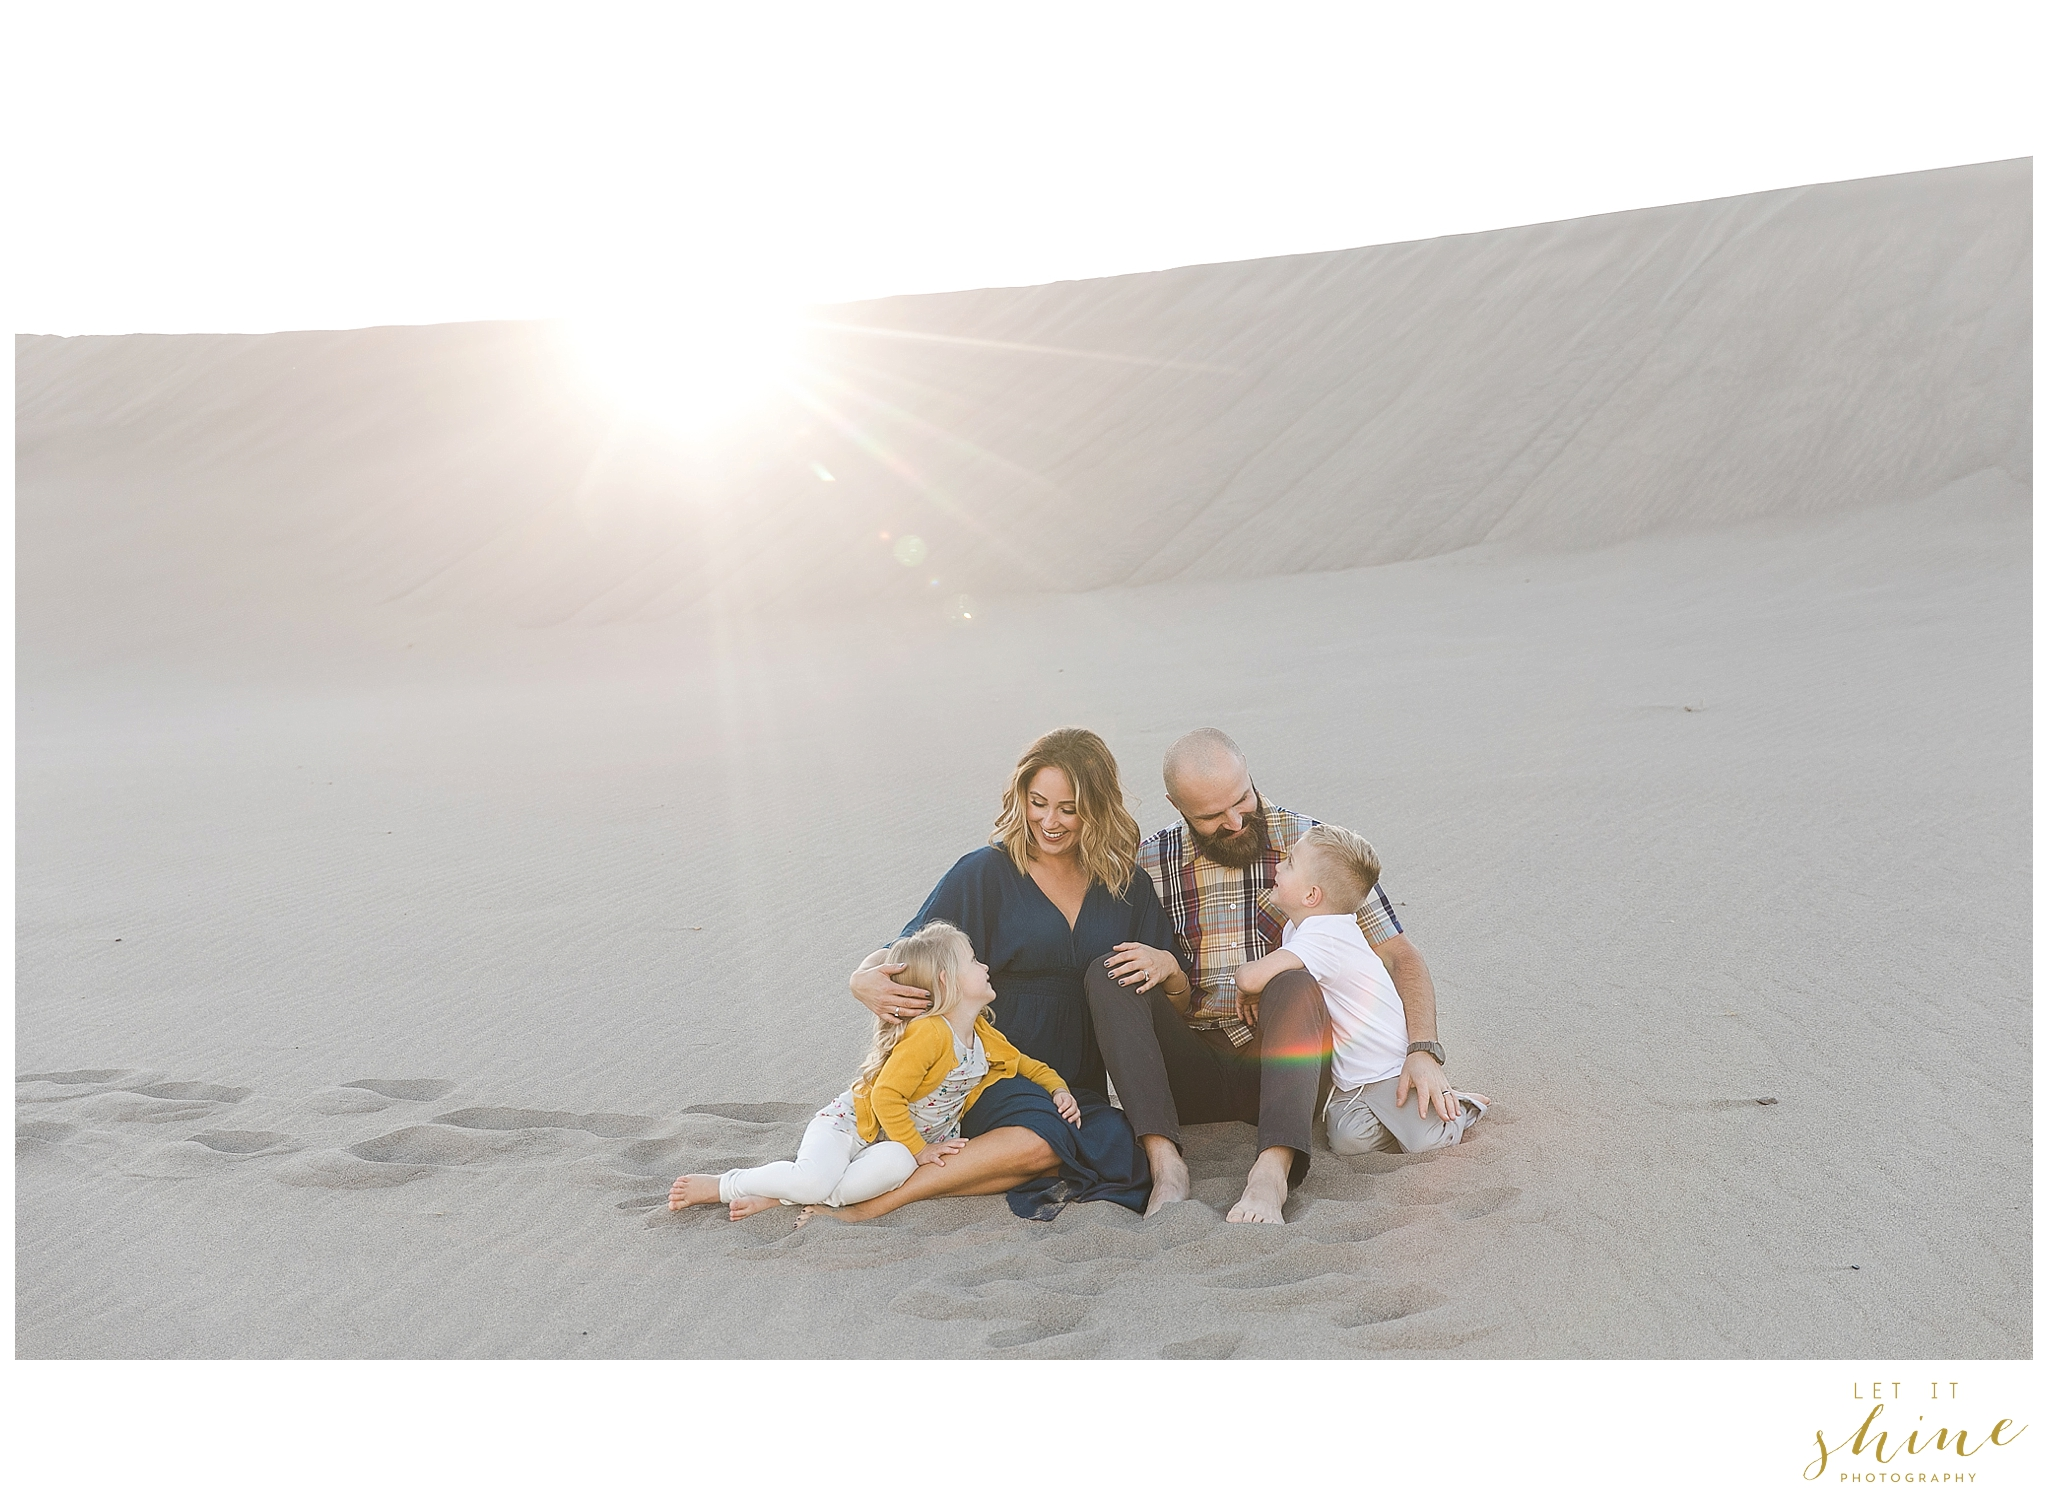 Bruneau Sand Dunes Family Session Let it shine Photography-4998.jpg